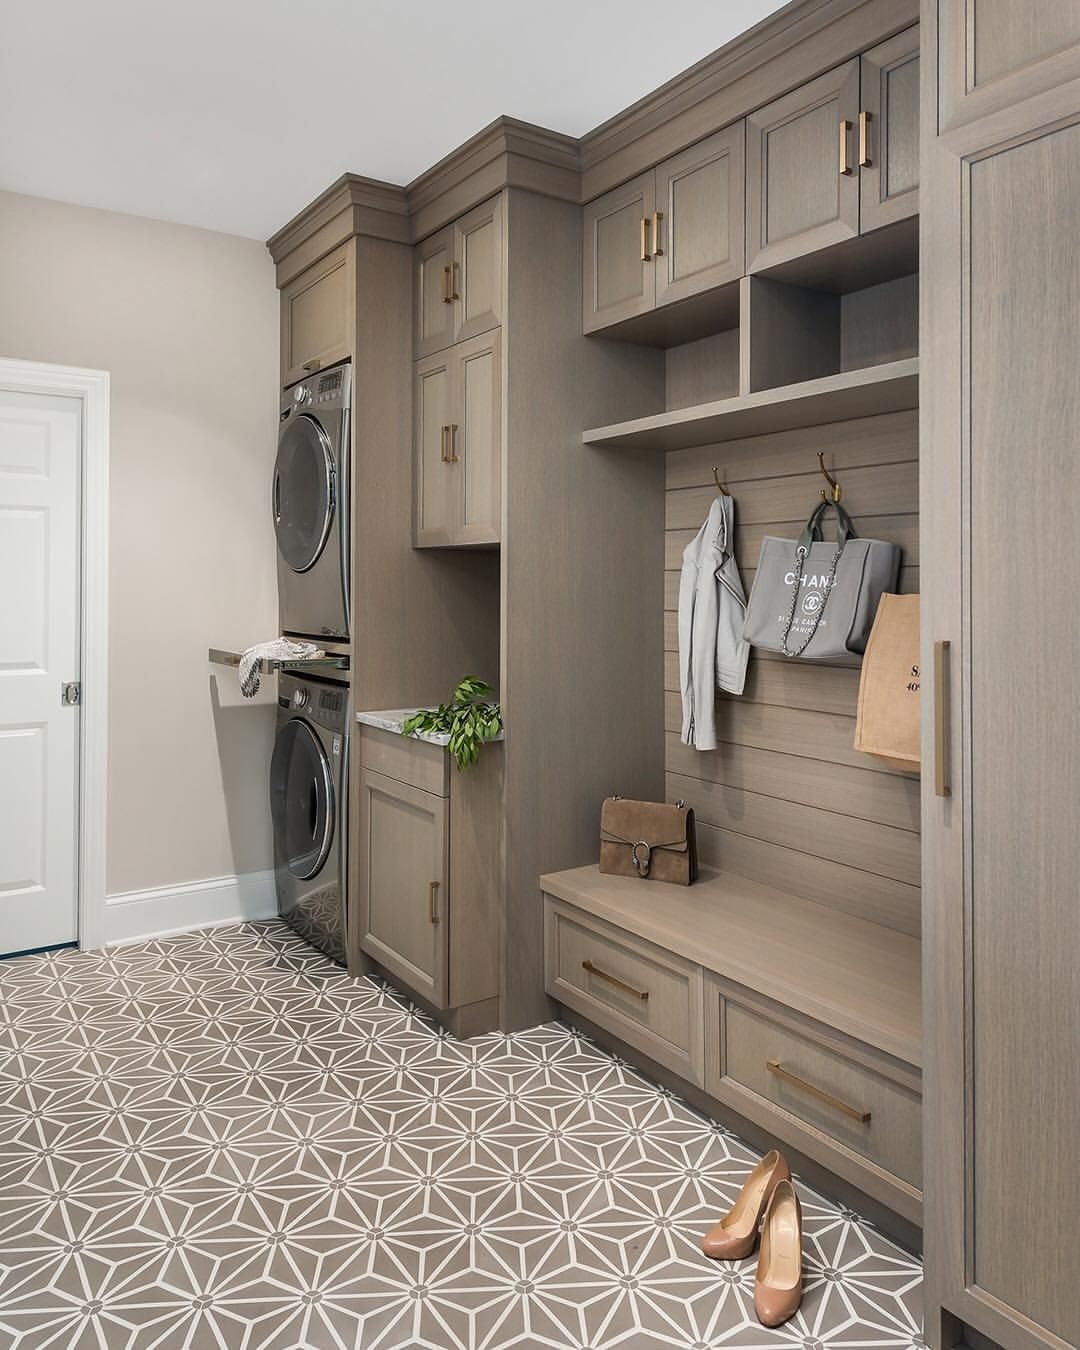 Another Top 10 On Houzz In 2018 Was This Laundry Room Remodel We Designed For Aivanelli Was Mudroom Laundry Room Laundry Room Tile Laundry Room Cabinets